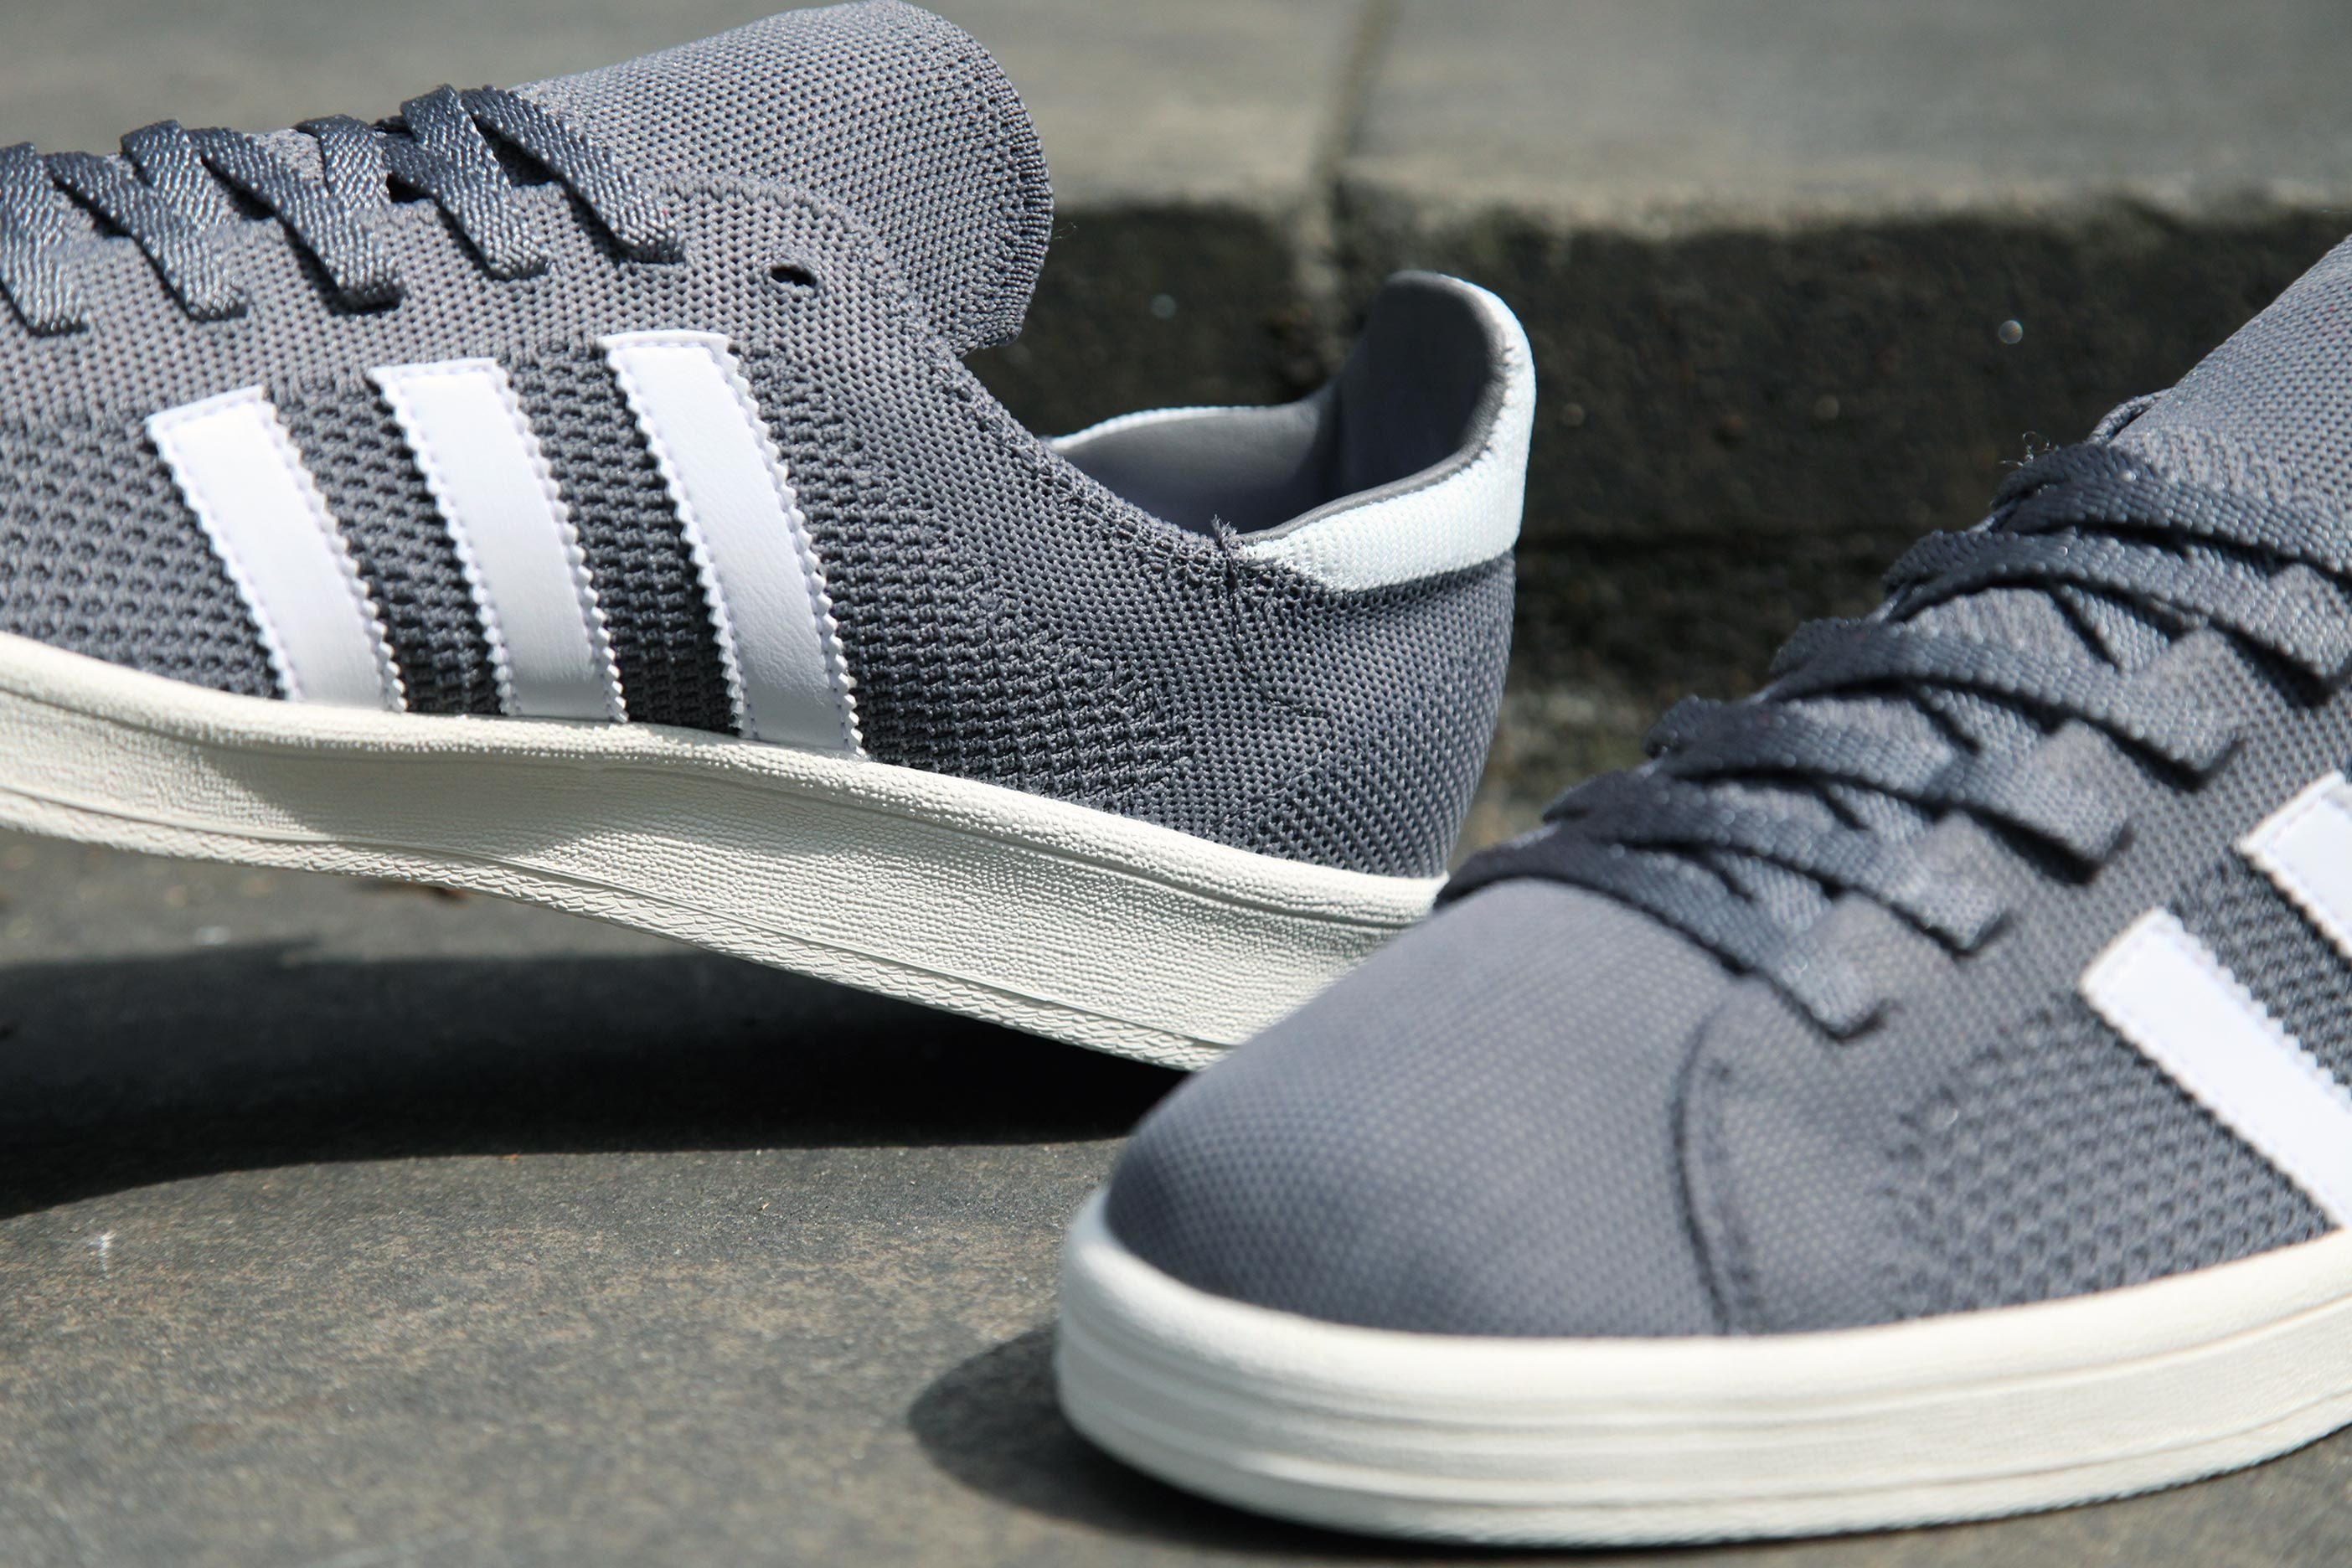 info for 682b2 5fc83 adidas Originals Campus 80s Primeknit Pack   Now Available   Foot Patrol